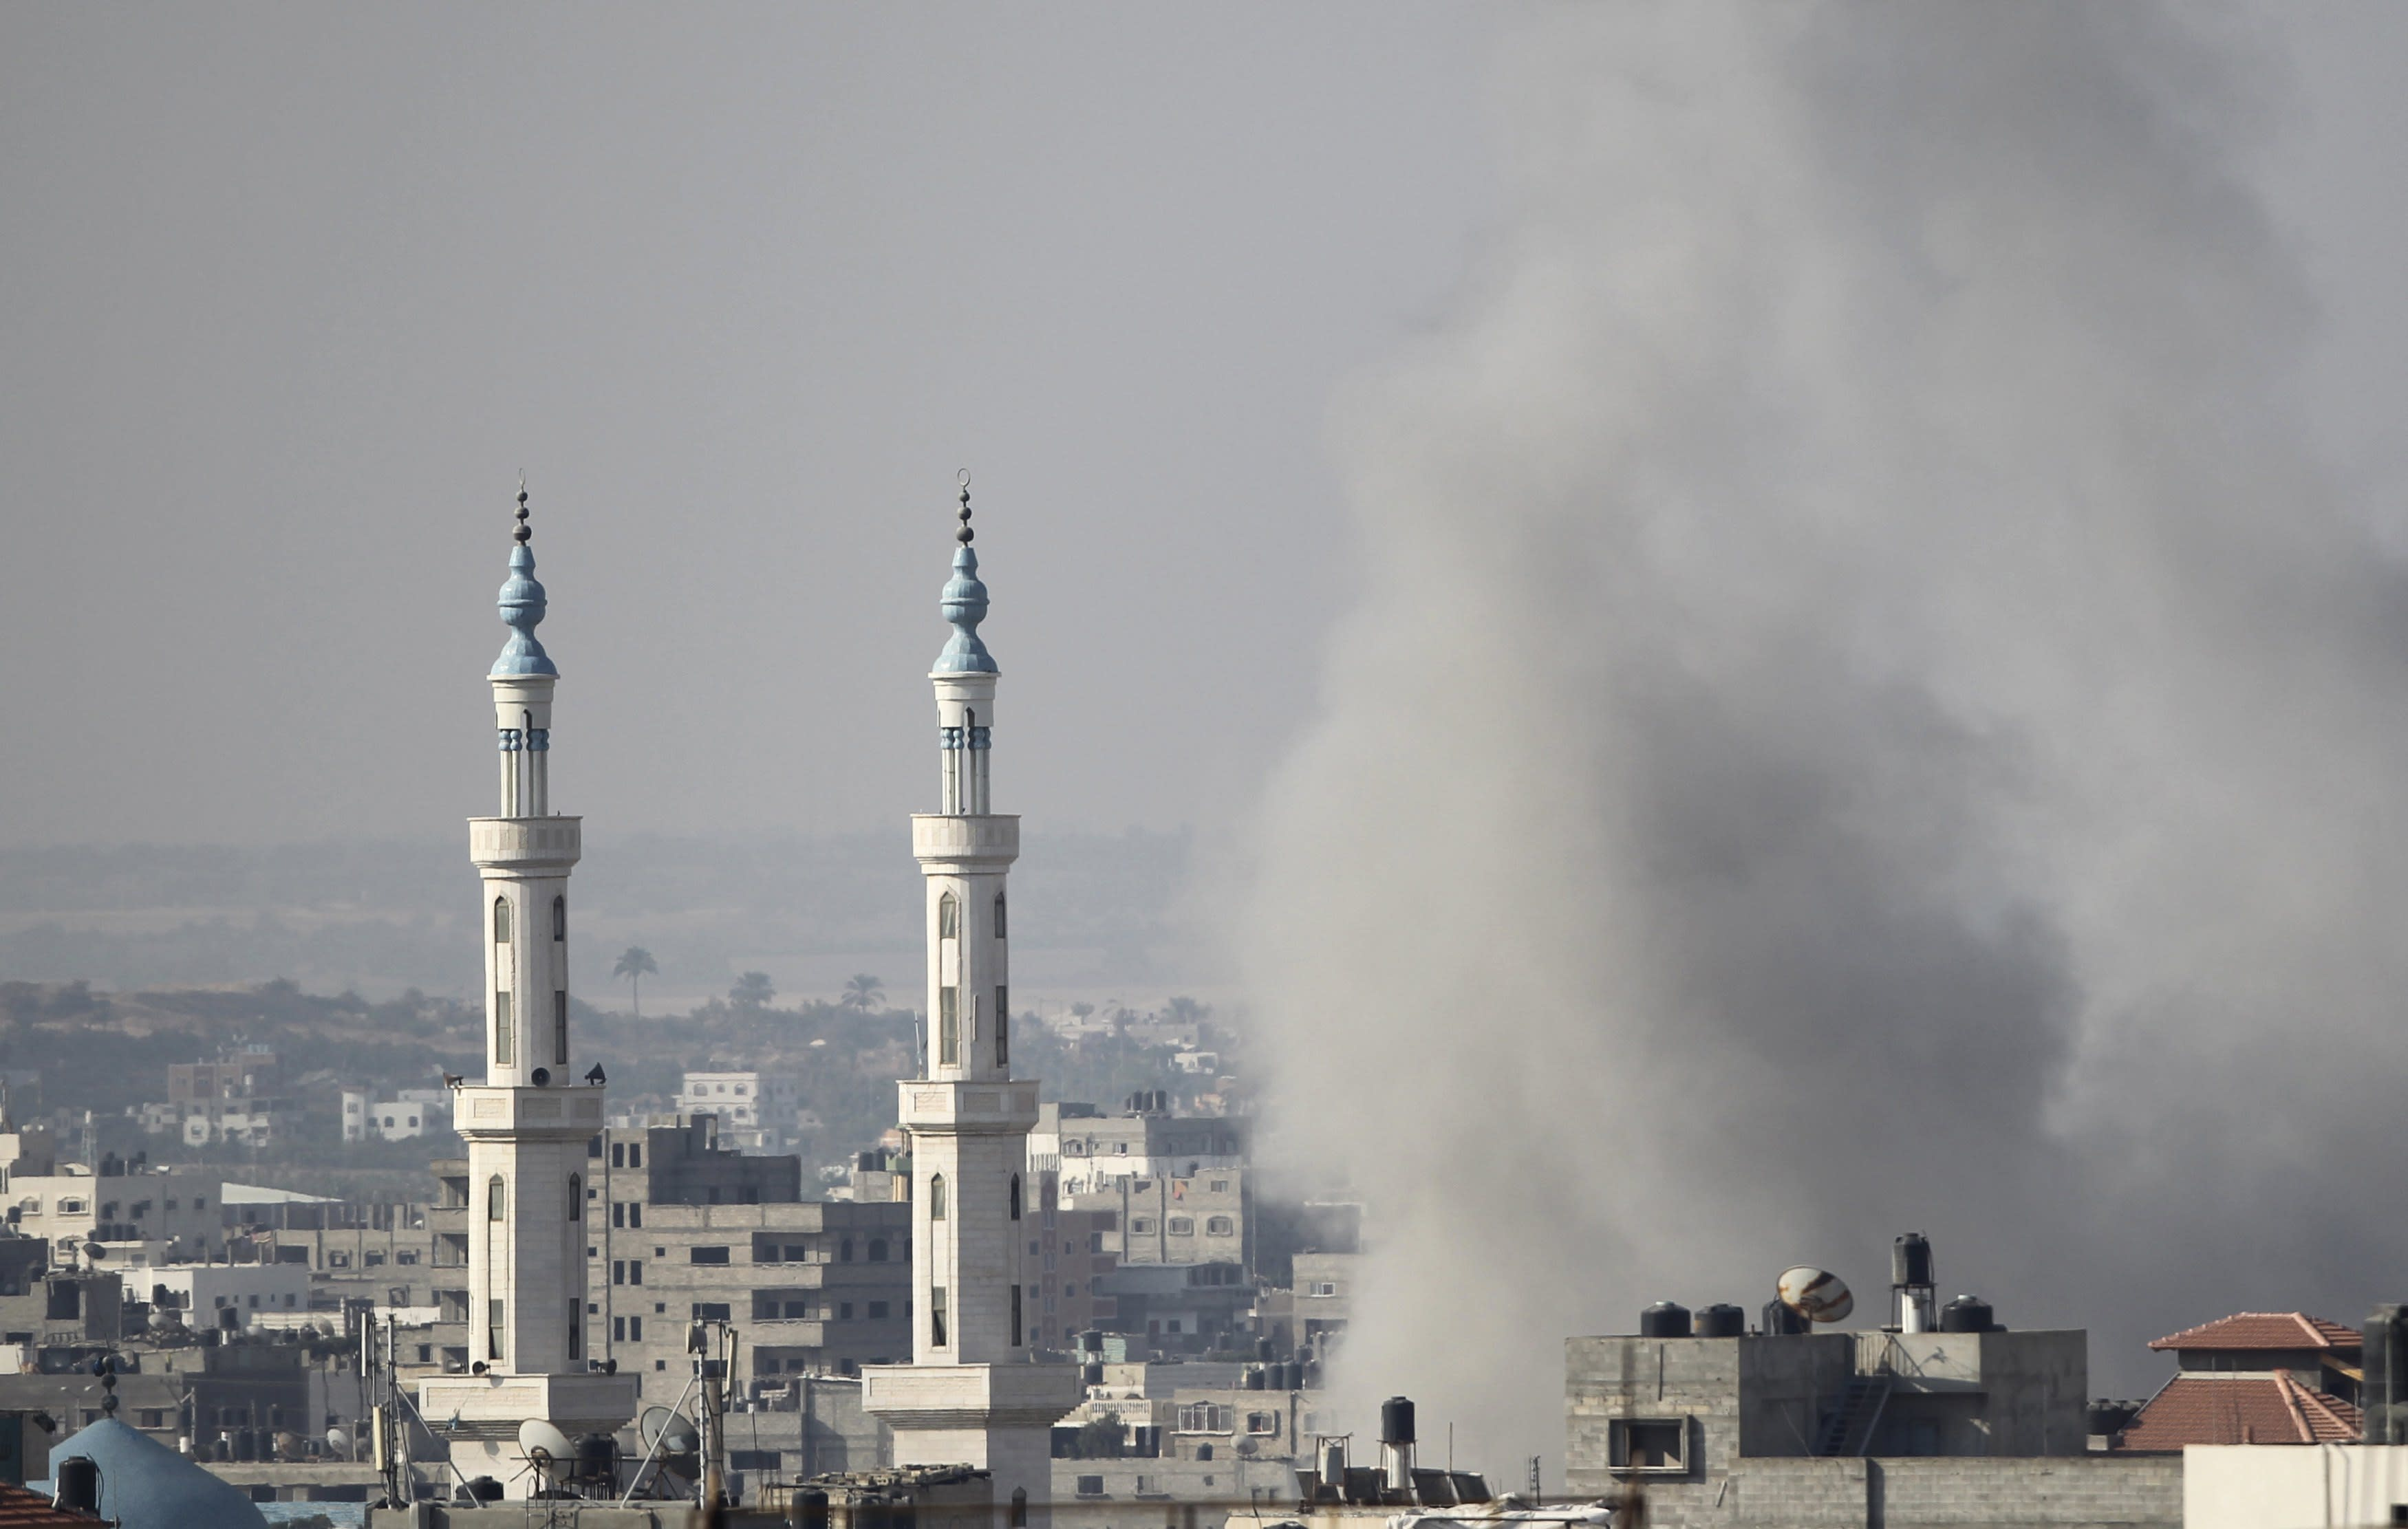 Smoke rises following what witnesses said was an Israeli air strike in Gaza August 23, 2014. Israeli aircraft bombed the Gaza Strip on Saturday and Palestinian militants fired rockets at the Jewish state, the military said, with no end in sight to the deadliest violence between the sides in years. Gaza health officials said five people were killed in an Israeli strike on a house in central Gaza. The Israeli military said it bombed about 20 targets across the Hamas-dominated strip, including rocket launchers and weapon caches. REUTERS/Ahmed Zakot (GAZA - Tags: POLITICS CONFLICT)